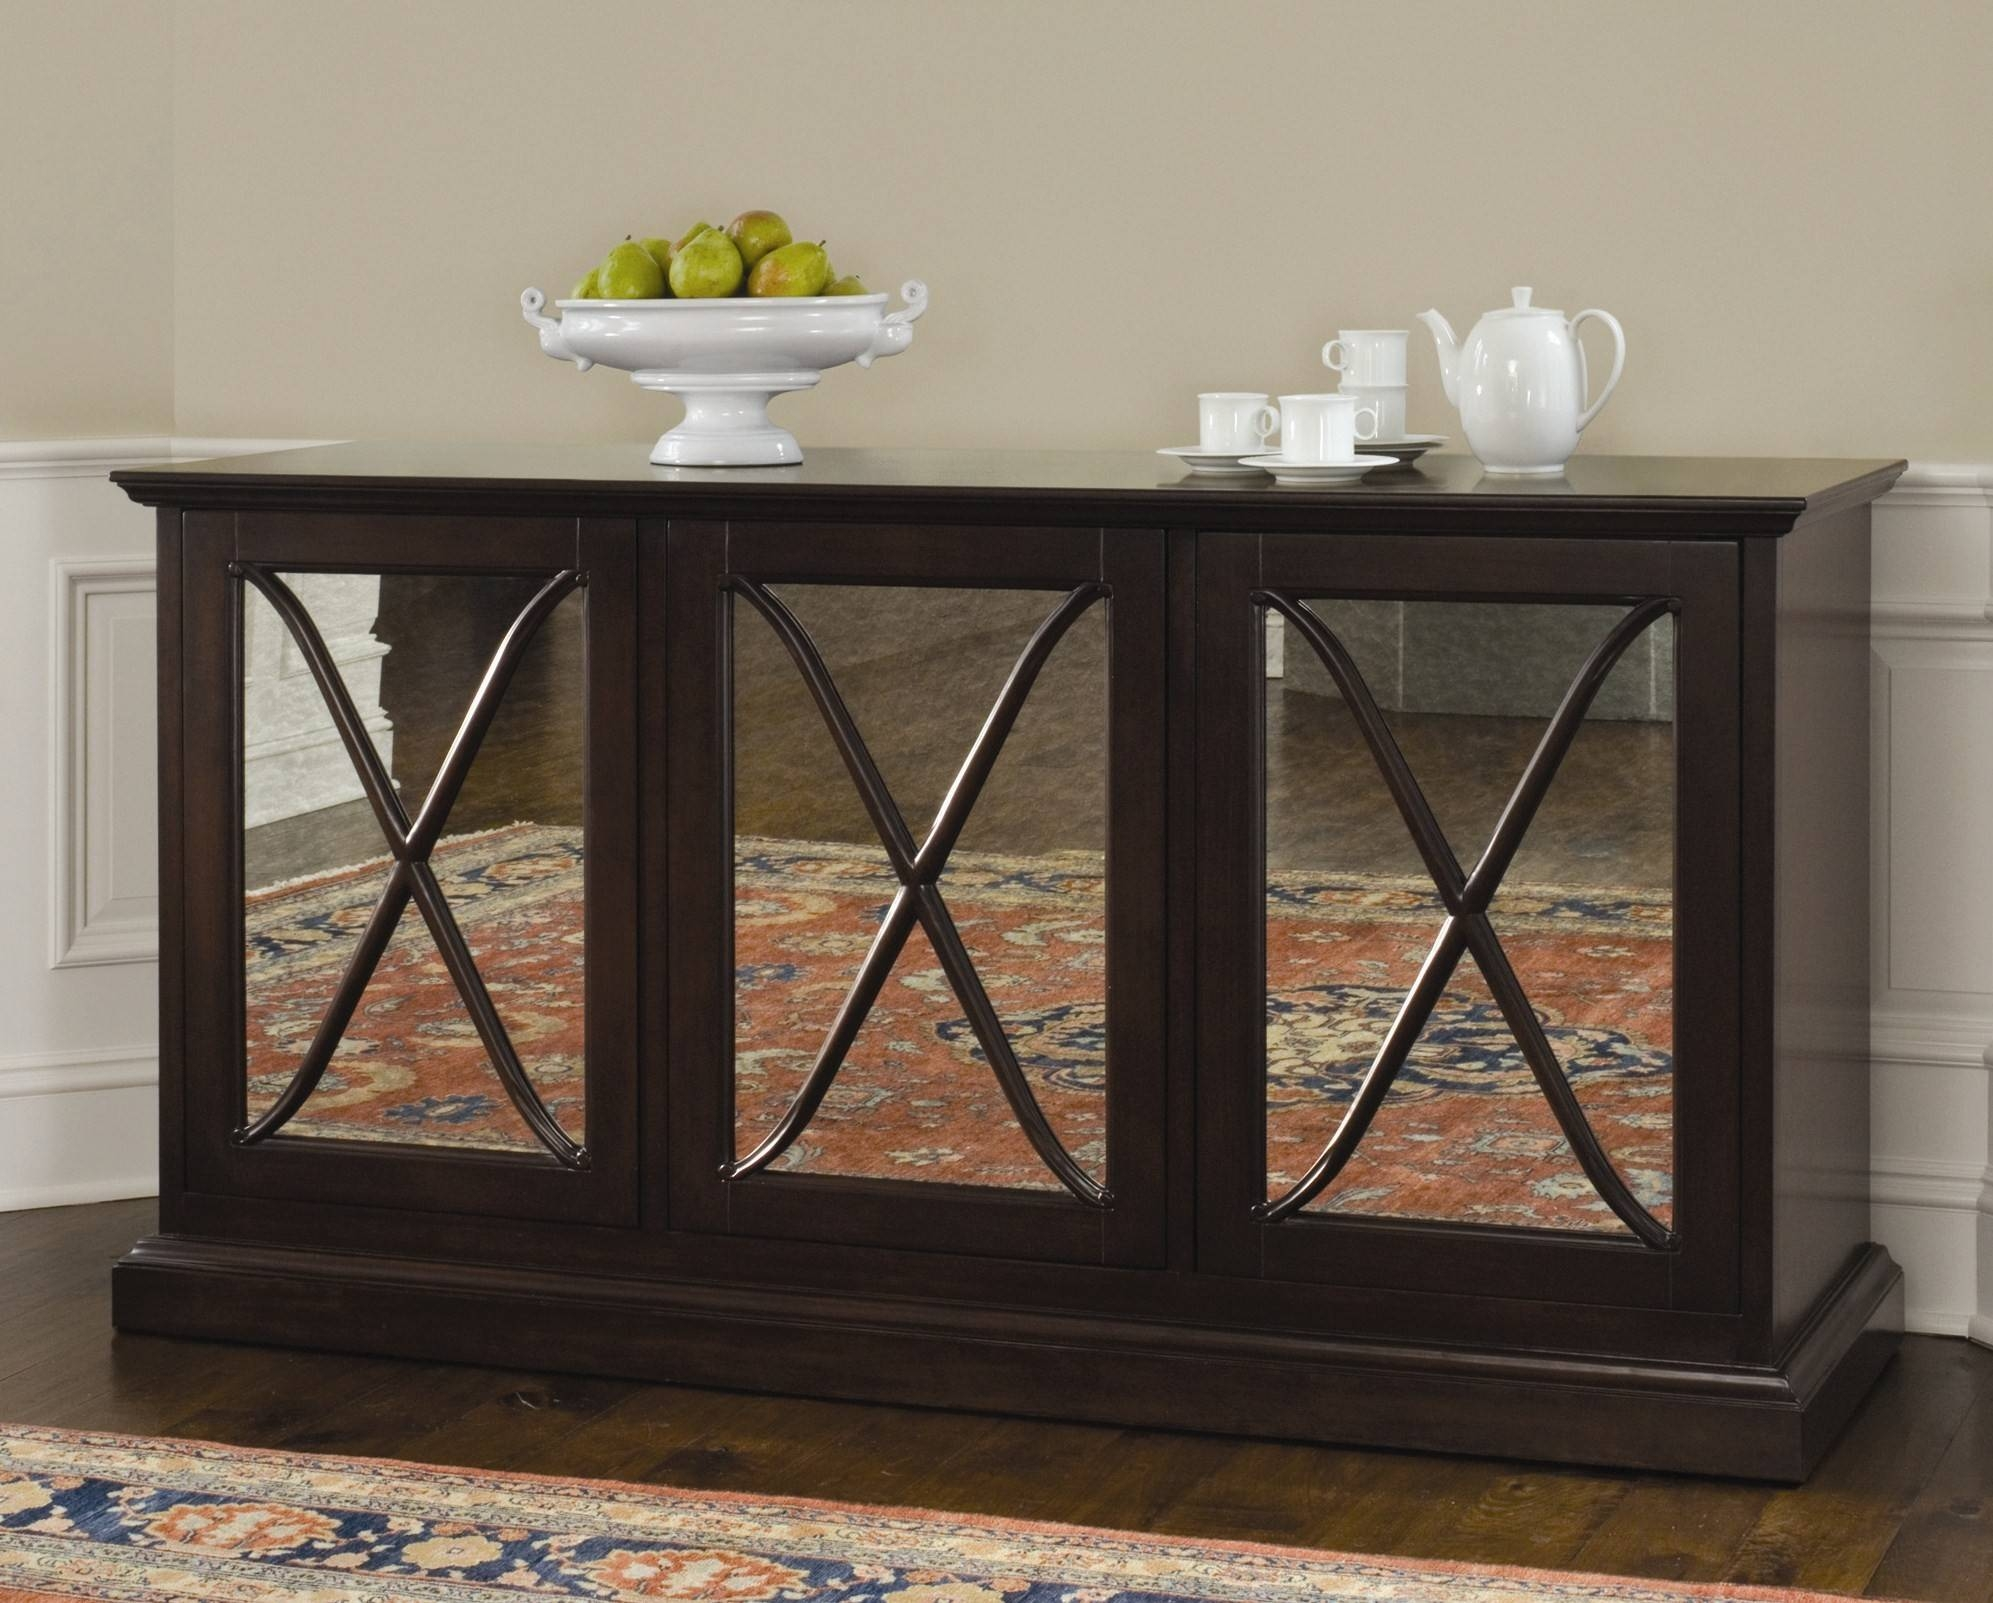 Sideboards. Astounding Mirrored Buffet Cabinet: Mirrored-Buffet throughout Dark Brown Sideboards (Image 23 of 30)